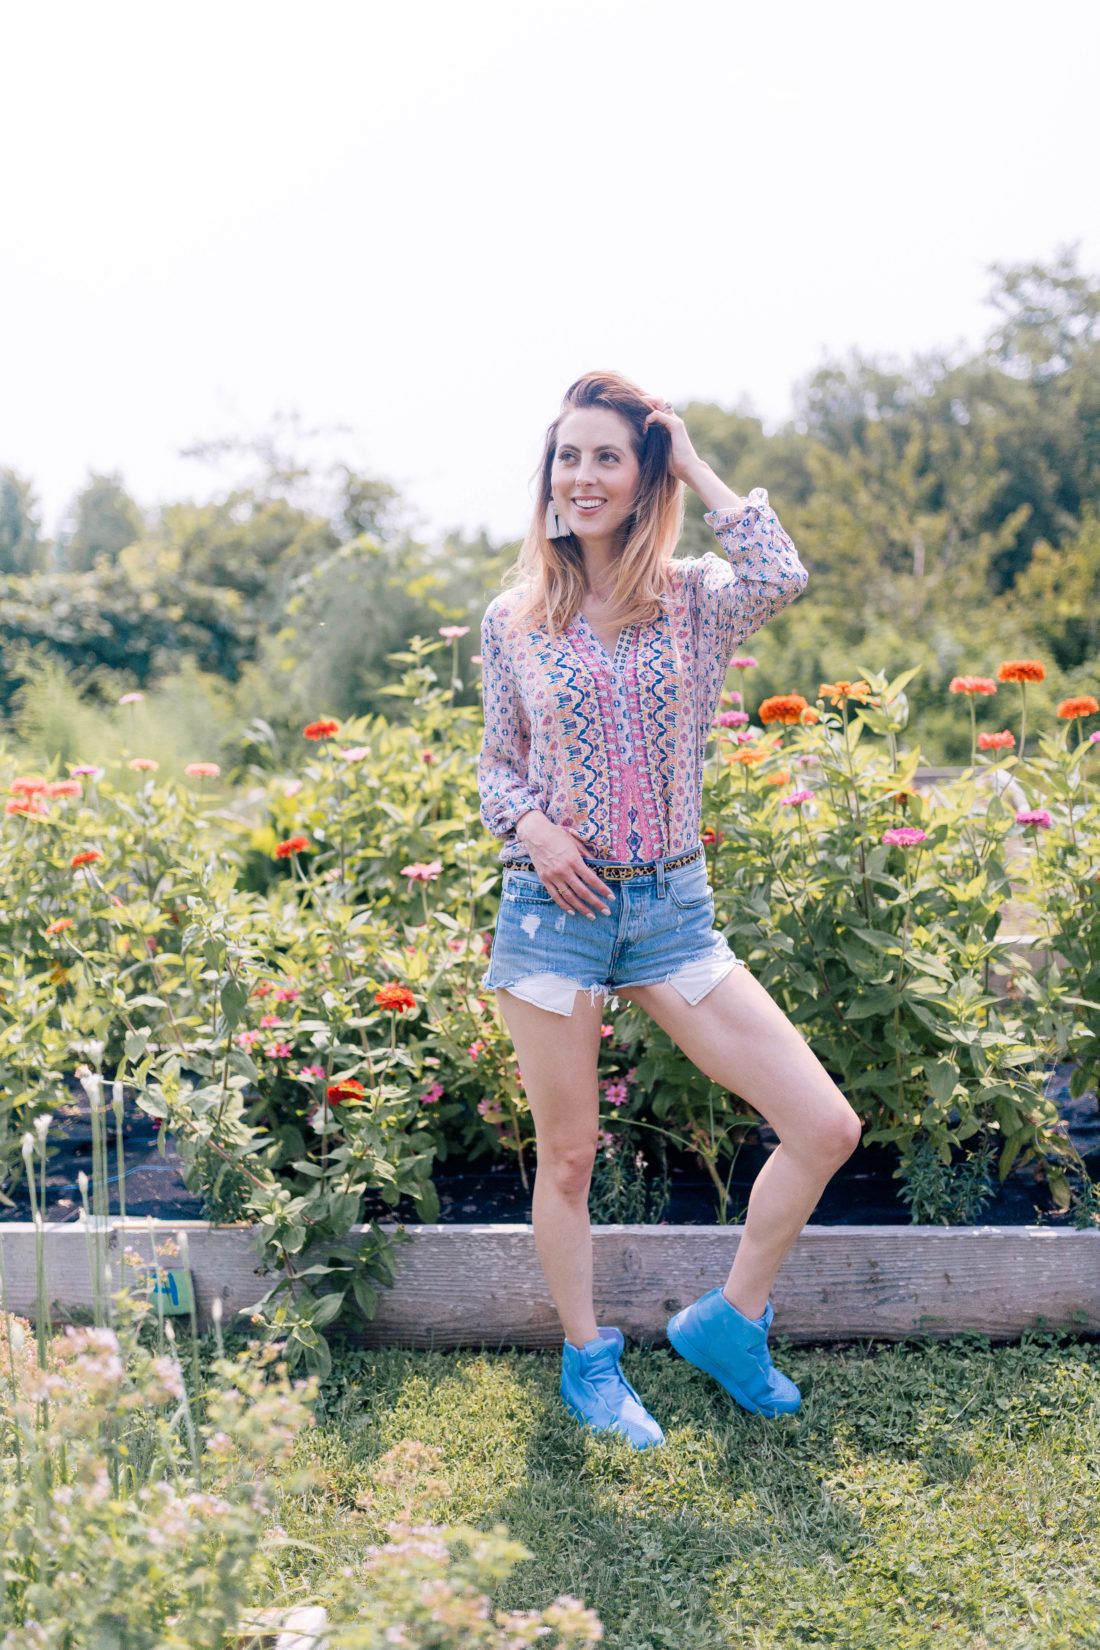 Eva Amurri Martino wears denim cutoffs and a printed top and stands in the garden of a local connecticut farm